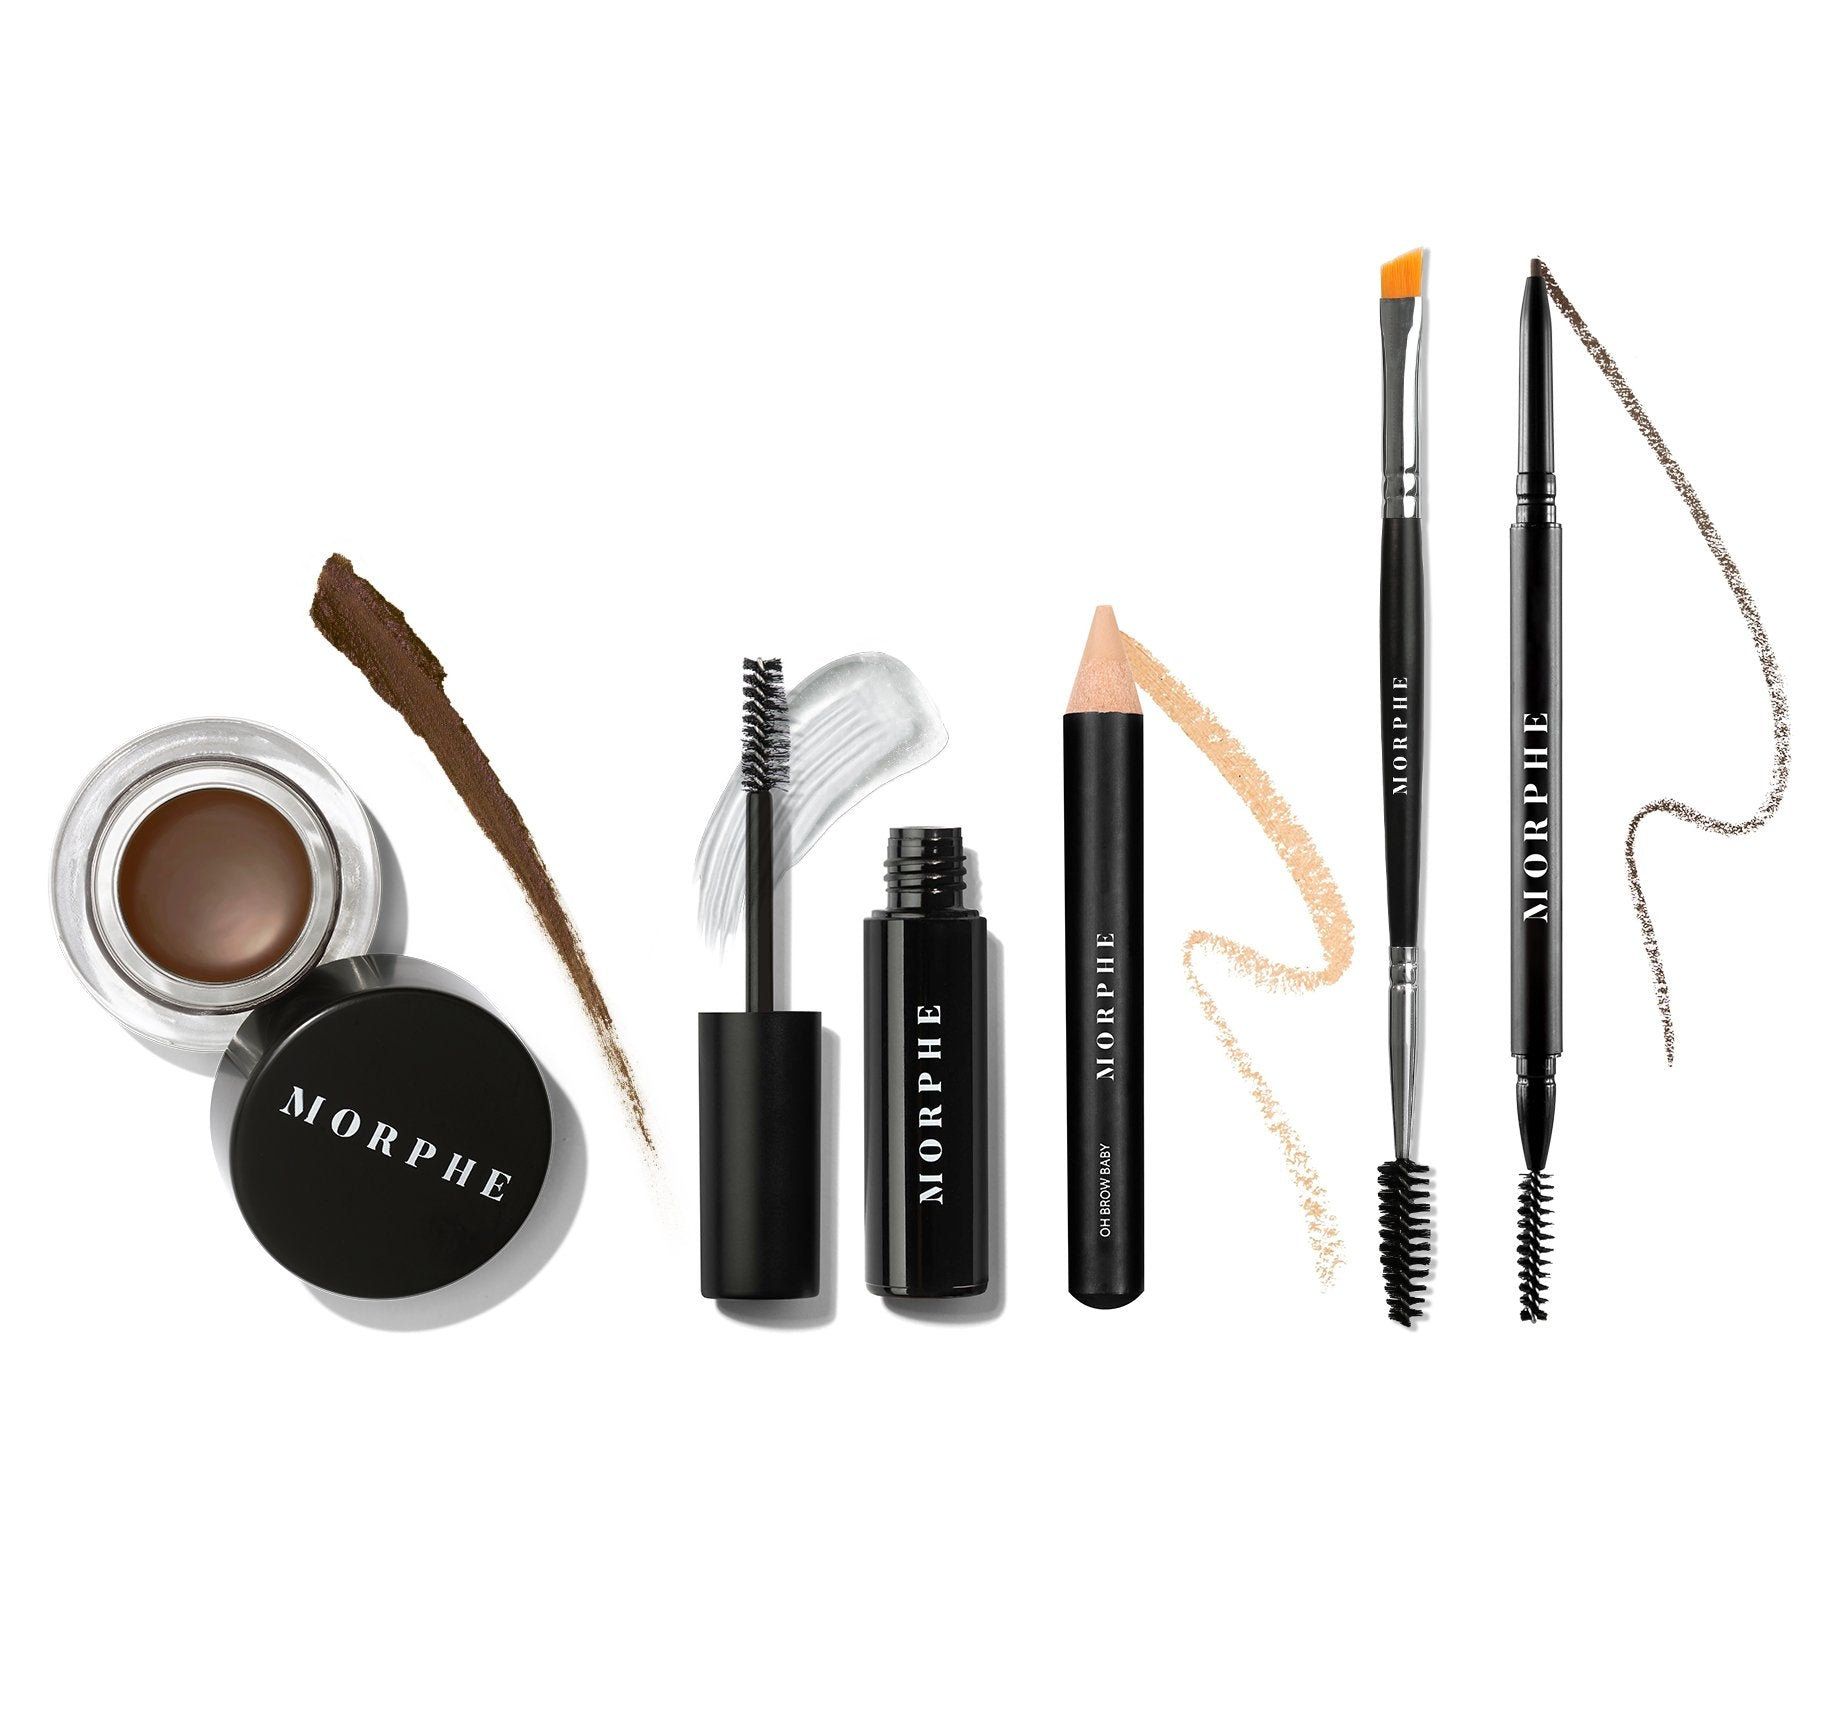 Arch Obsessions Brow Kit Mocha Morphe Us